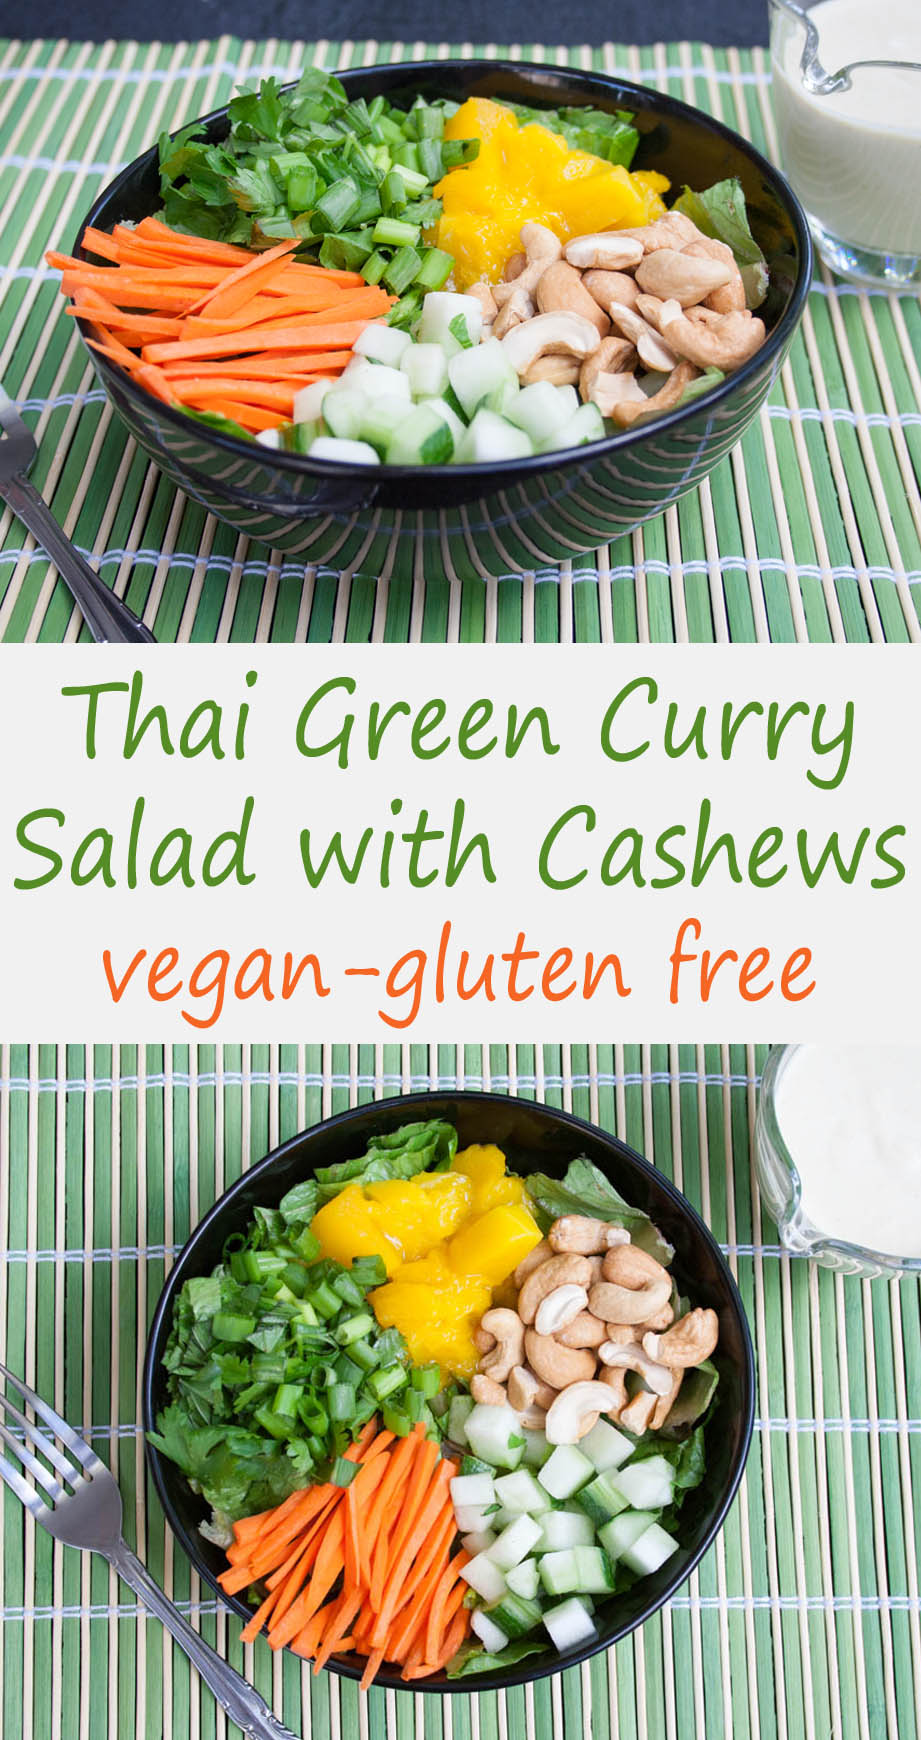 Thai Green Curry Salad with Cashews (vegan, gluten free) - This sweet, mildly spicy salad makes a filling meal. The dressing alone is bowl licking good!